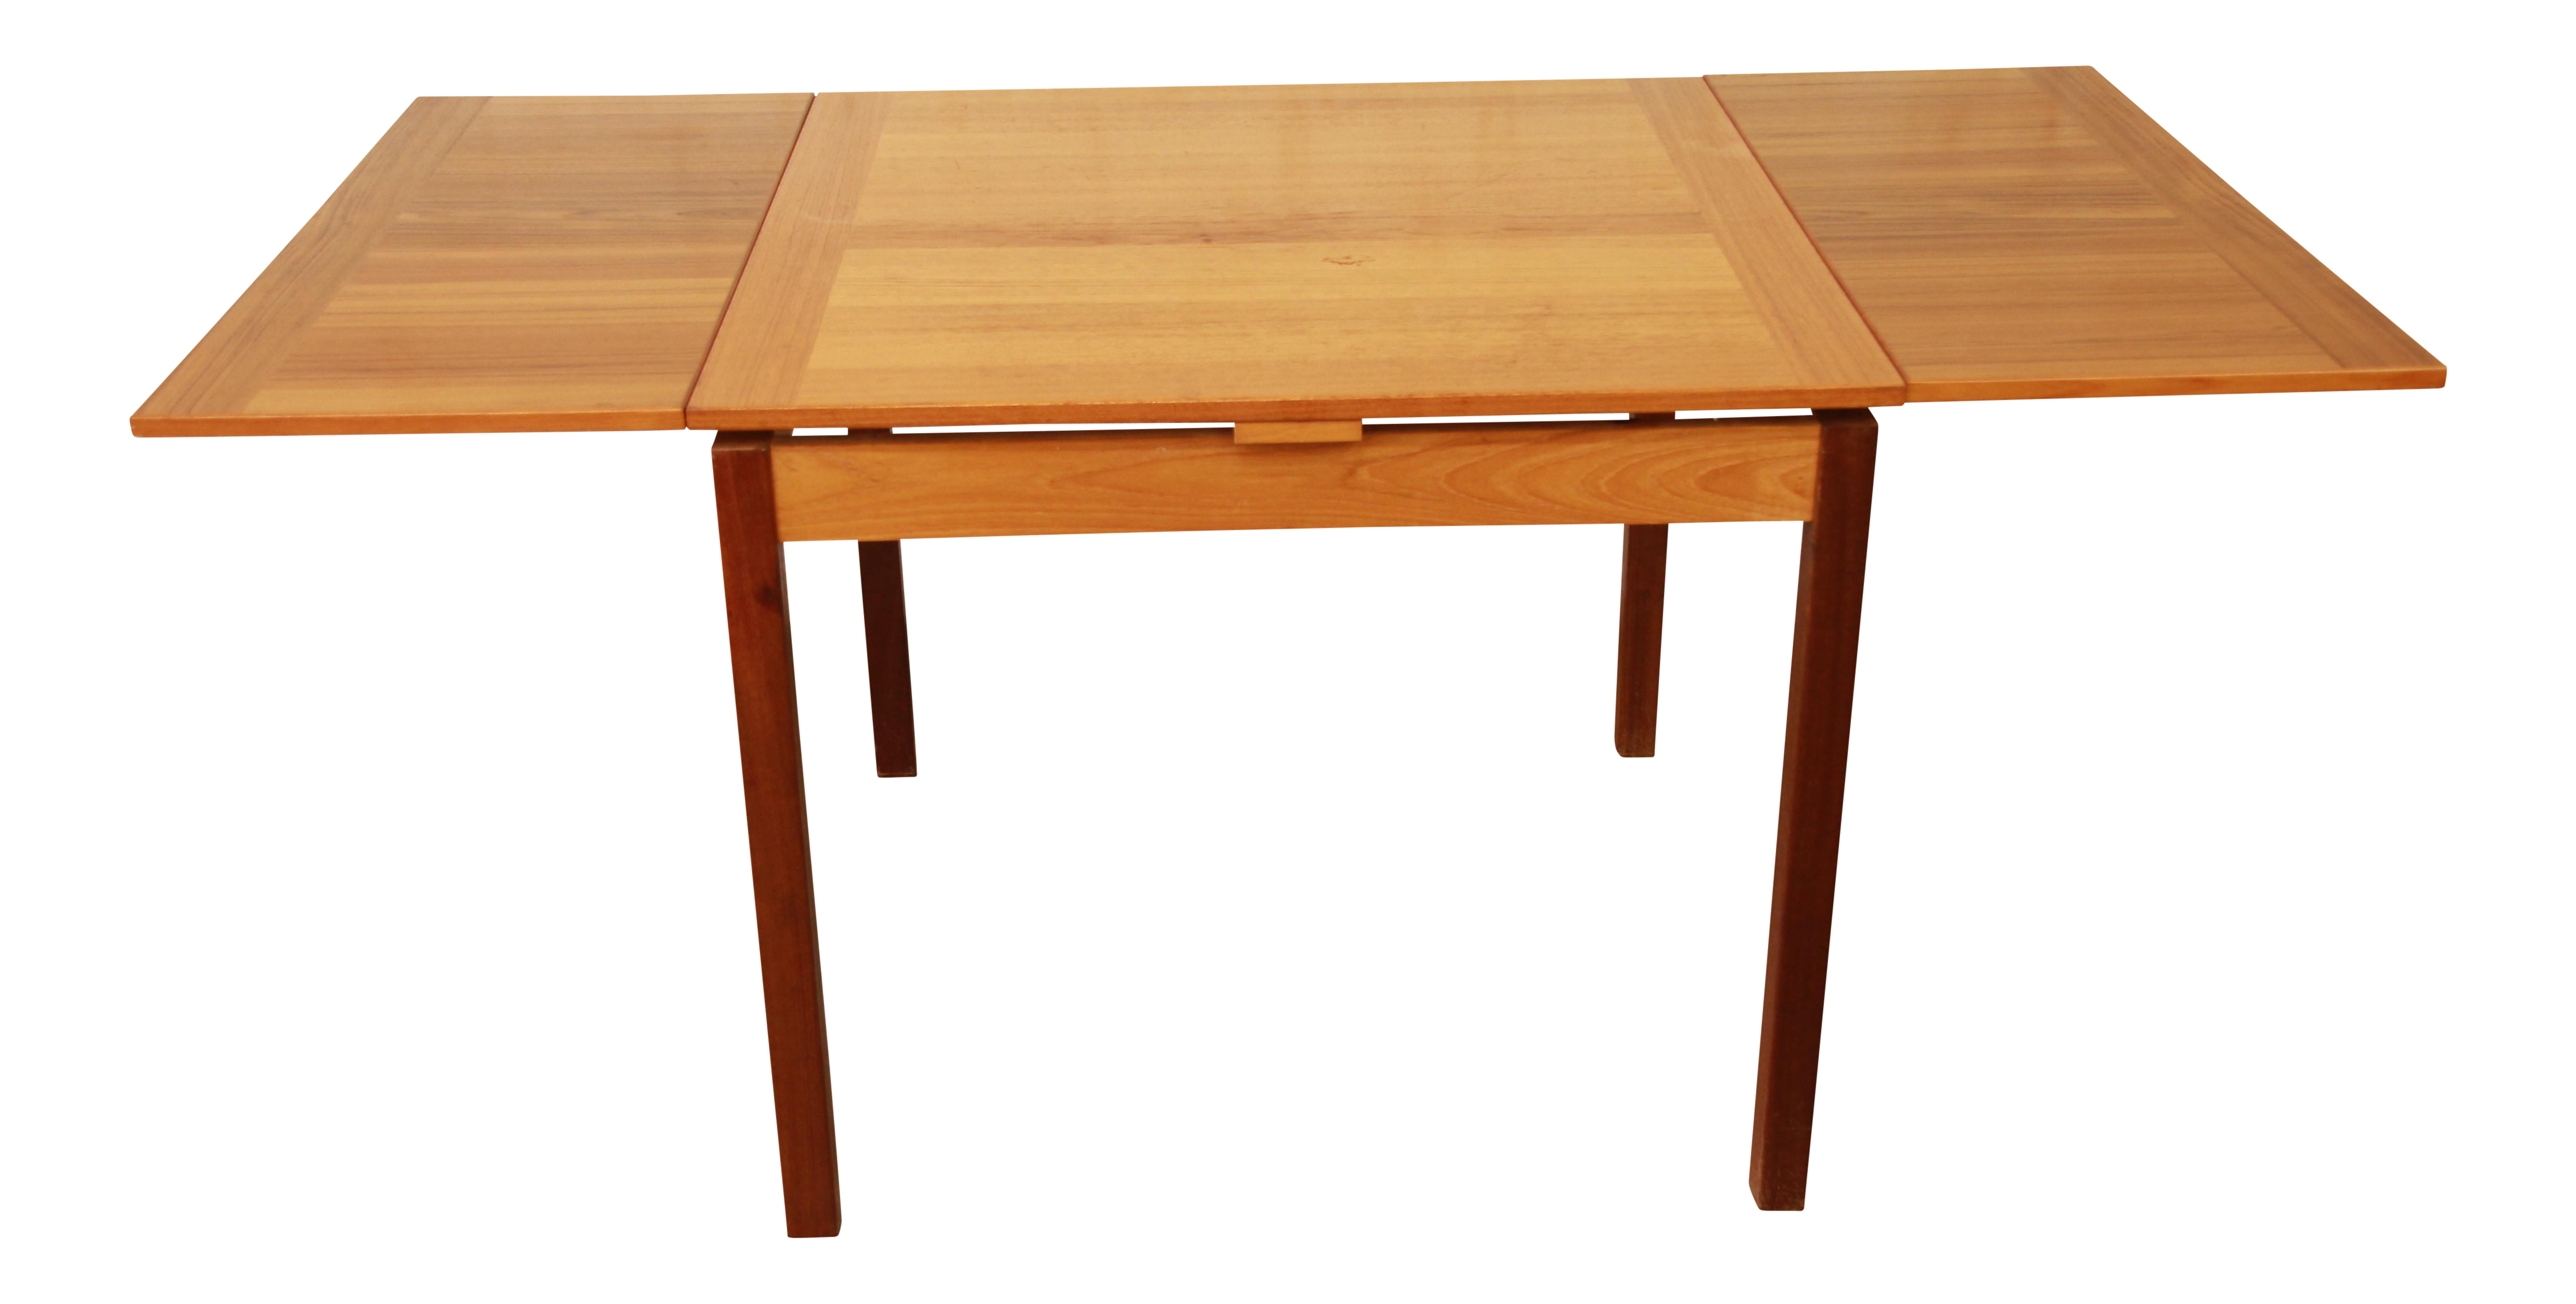 Teak extension dining table in excellent condition very clean and - Ansager Mobler Square Danish Modern Teak Extension Dining Table Chairish